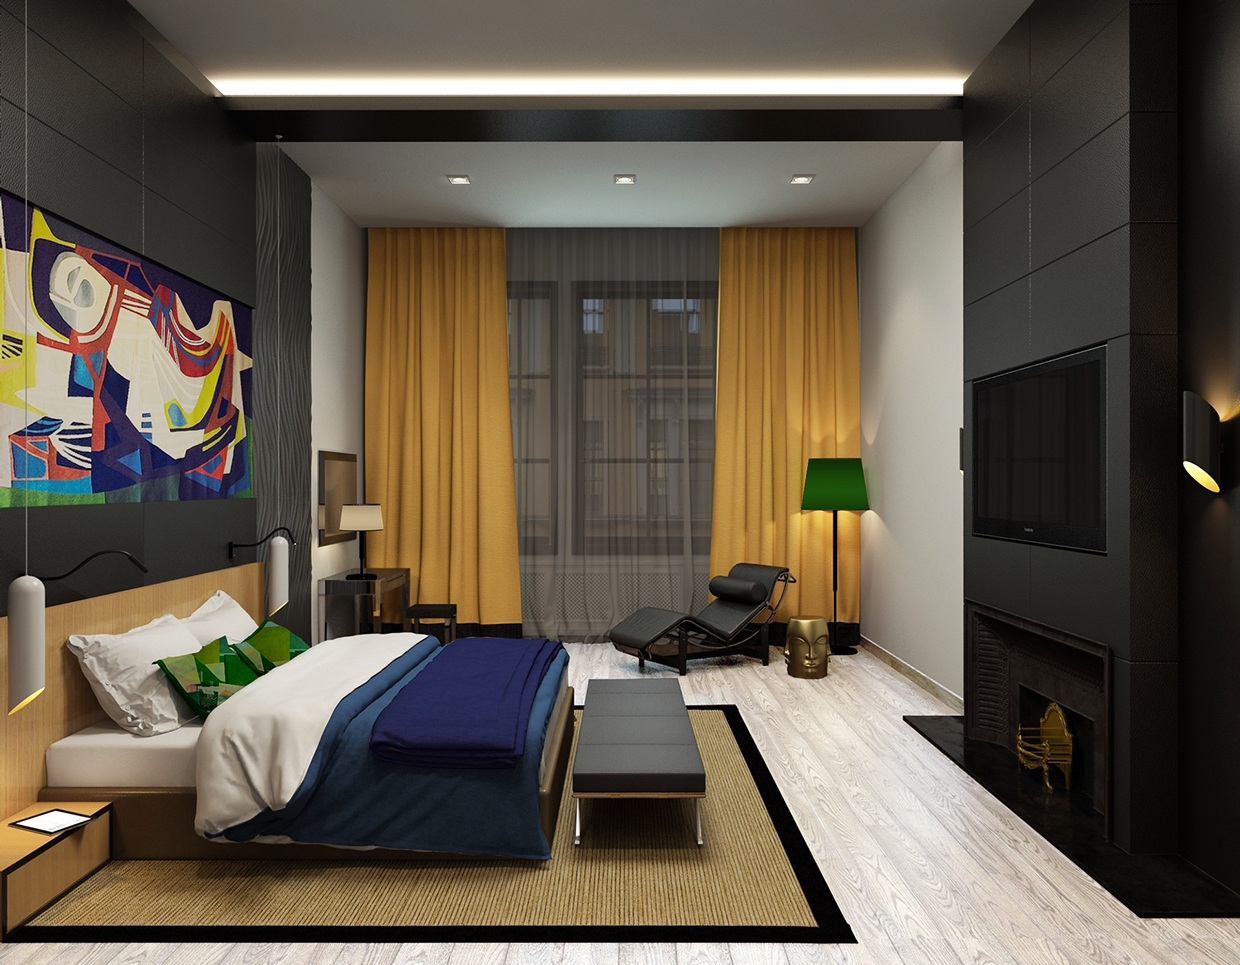 3 Ideas For A 2 Bedroom Home Includes Floor Plans